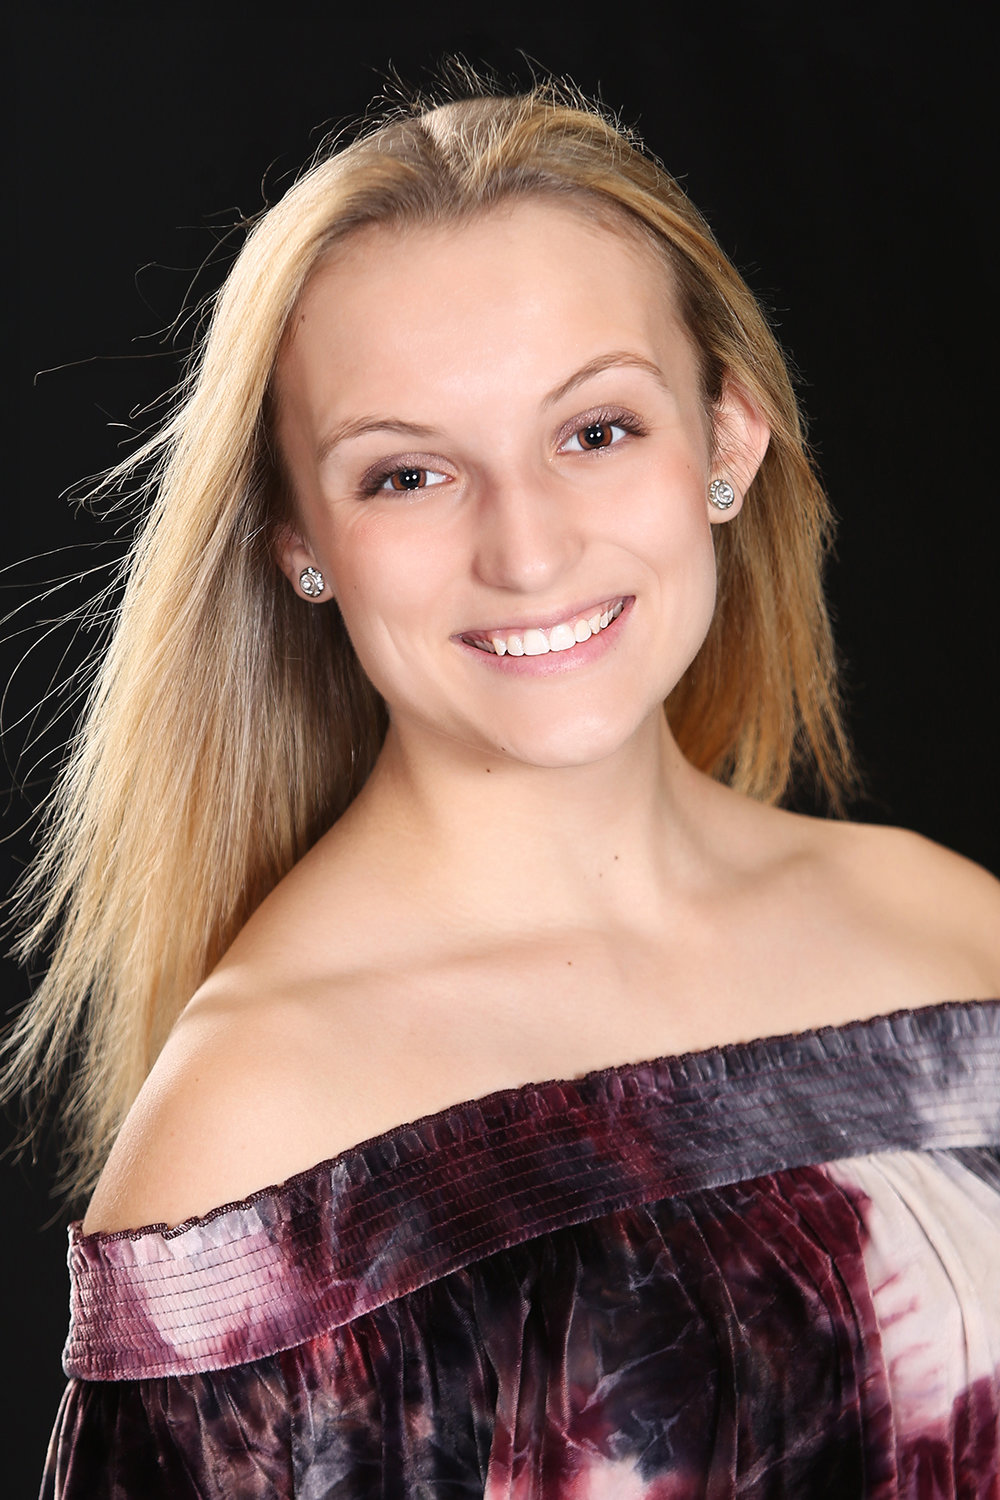 ALEXIS HOUSER    Montgomery County's Outstanding Teen   Talent:  Dance   Platform:  When Life Throws You A Curve: Living with Scoliosis